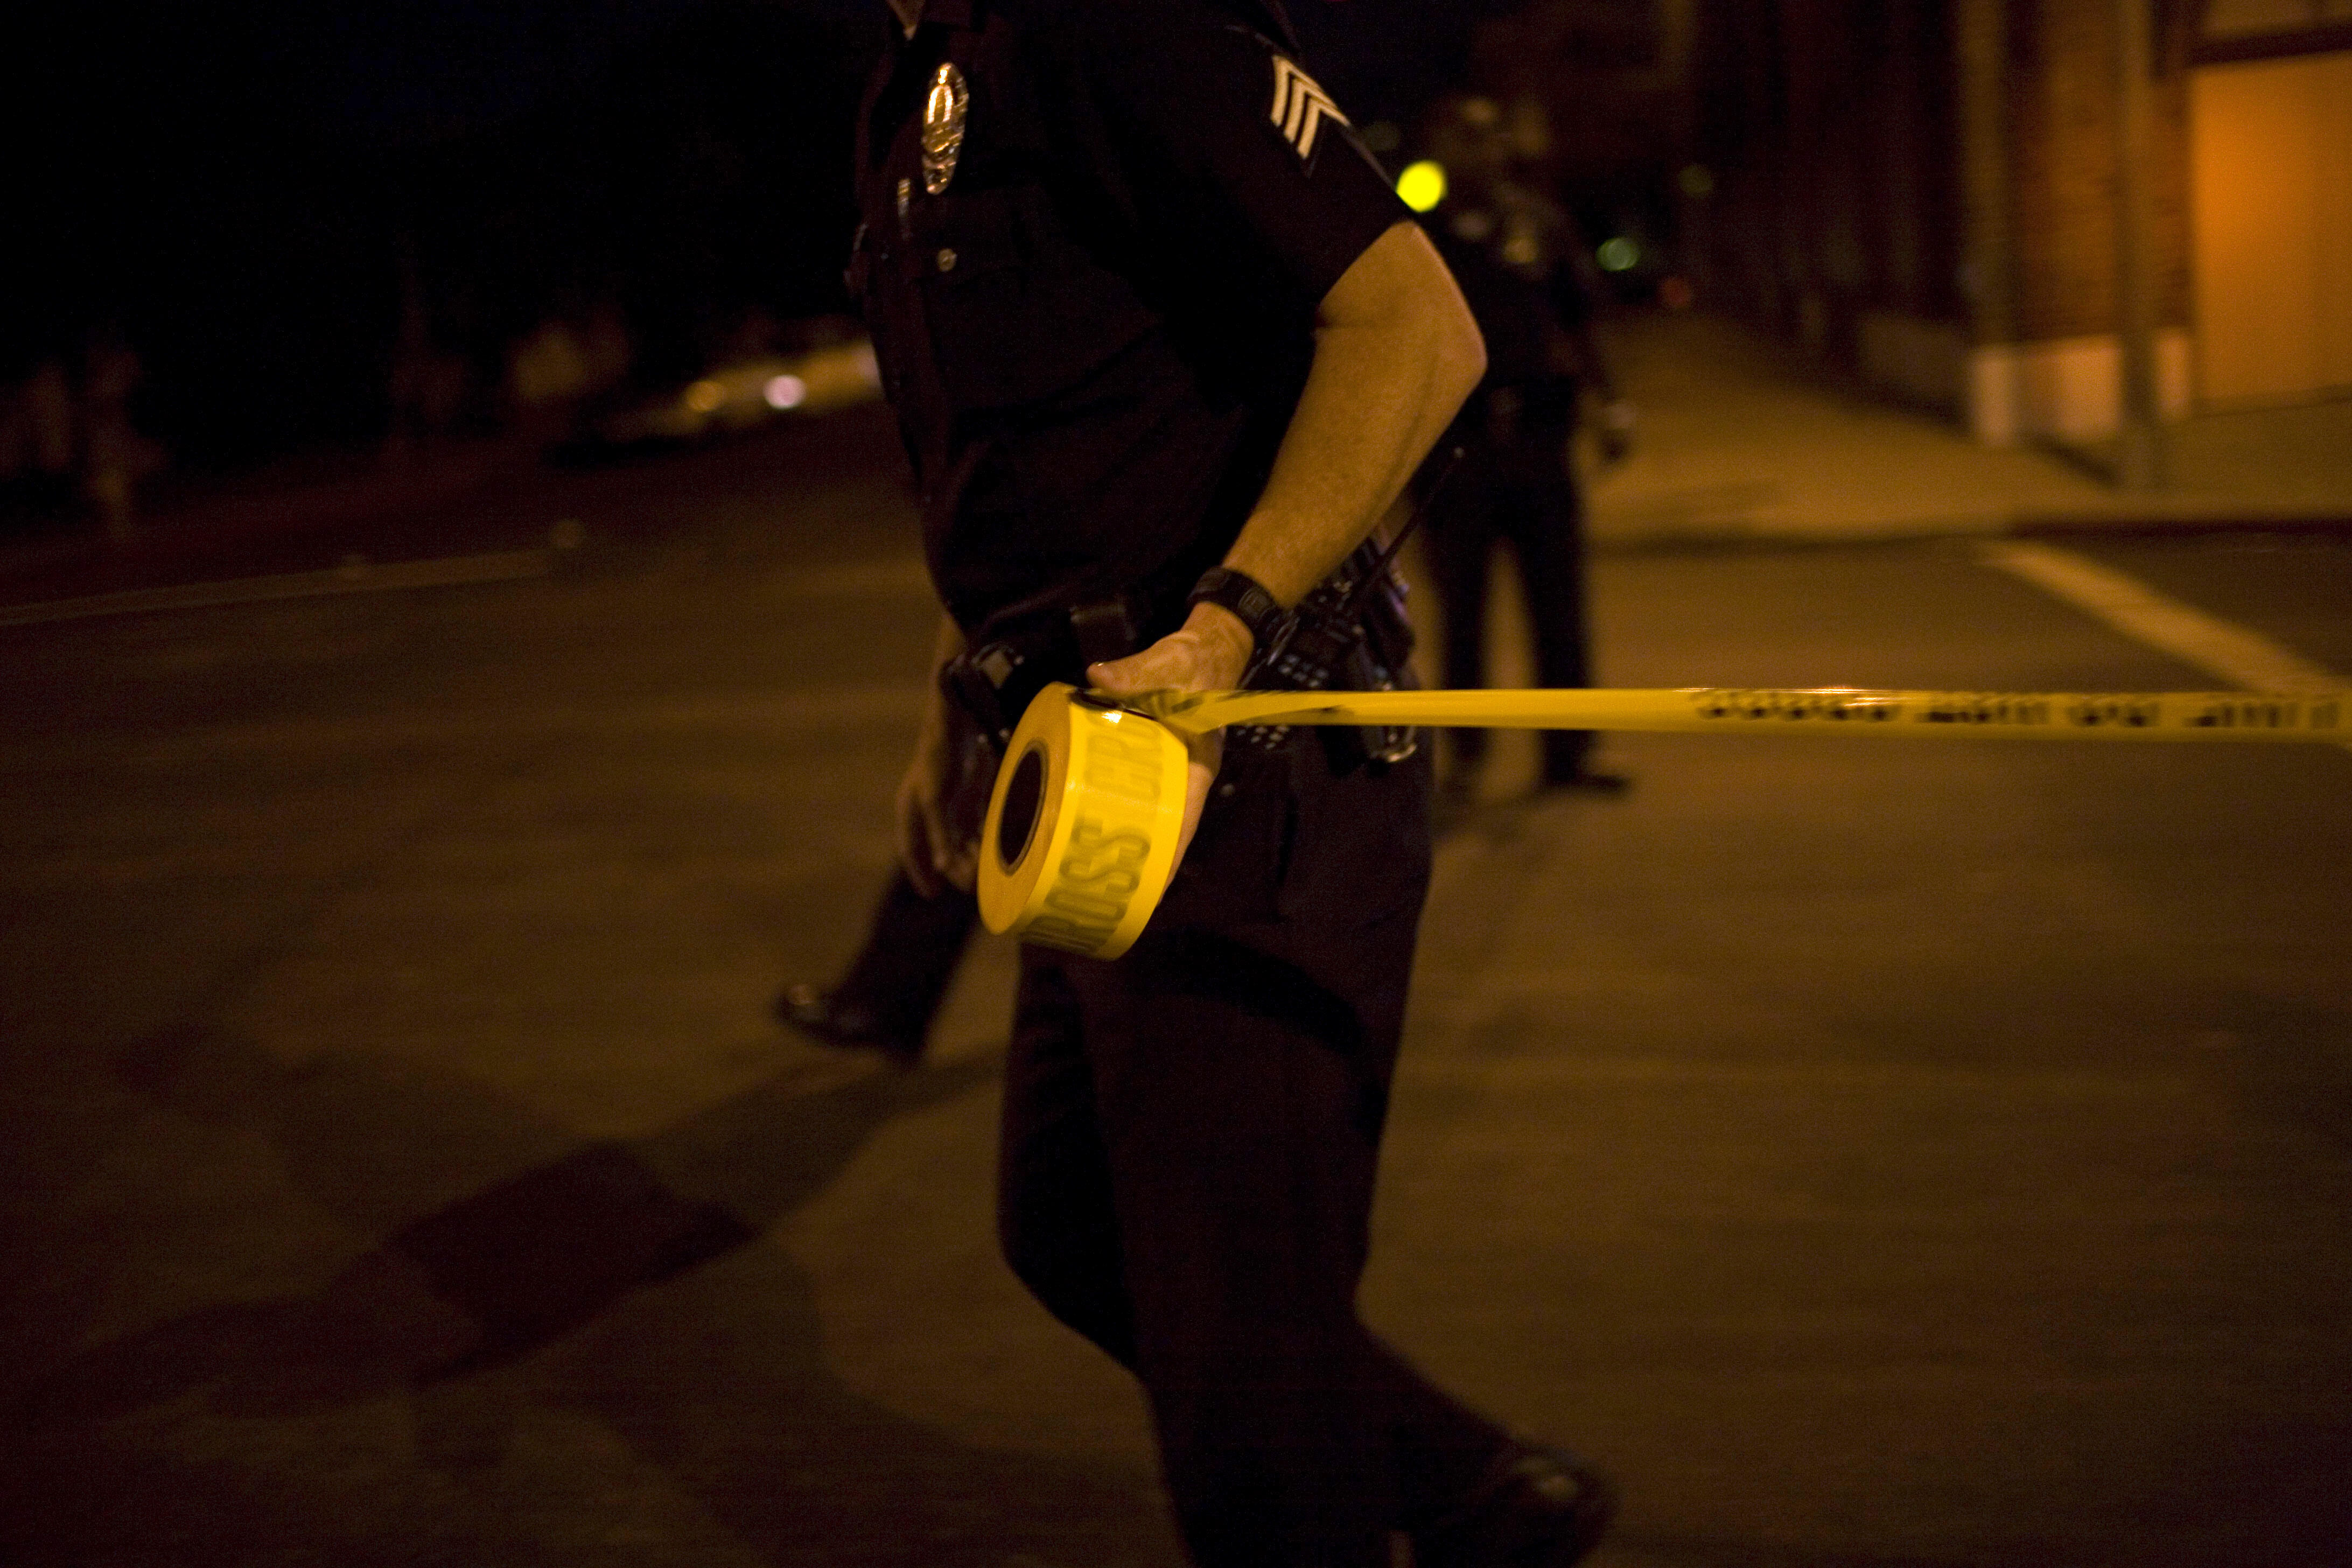 LOS ANGELES - SEPTEMBER 14: Los Angeles Police Department gang unit officers tape off a Crime Scene Investigation area following the shooting of a man September 14, 2007 in the Northeast precinct of Los Angeles, California. The injured man was taken to a